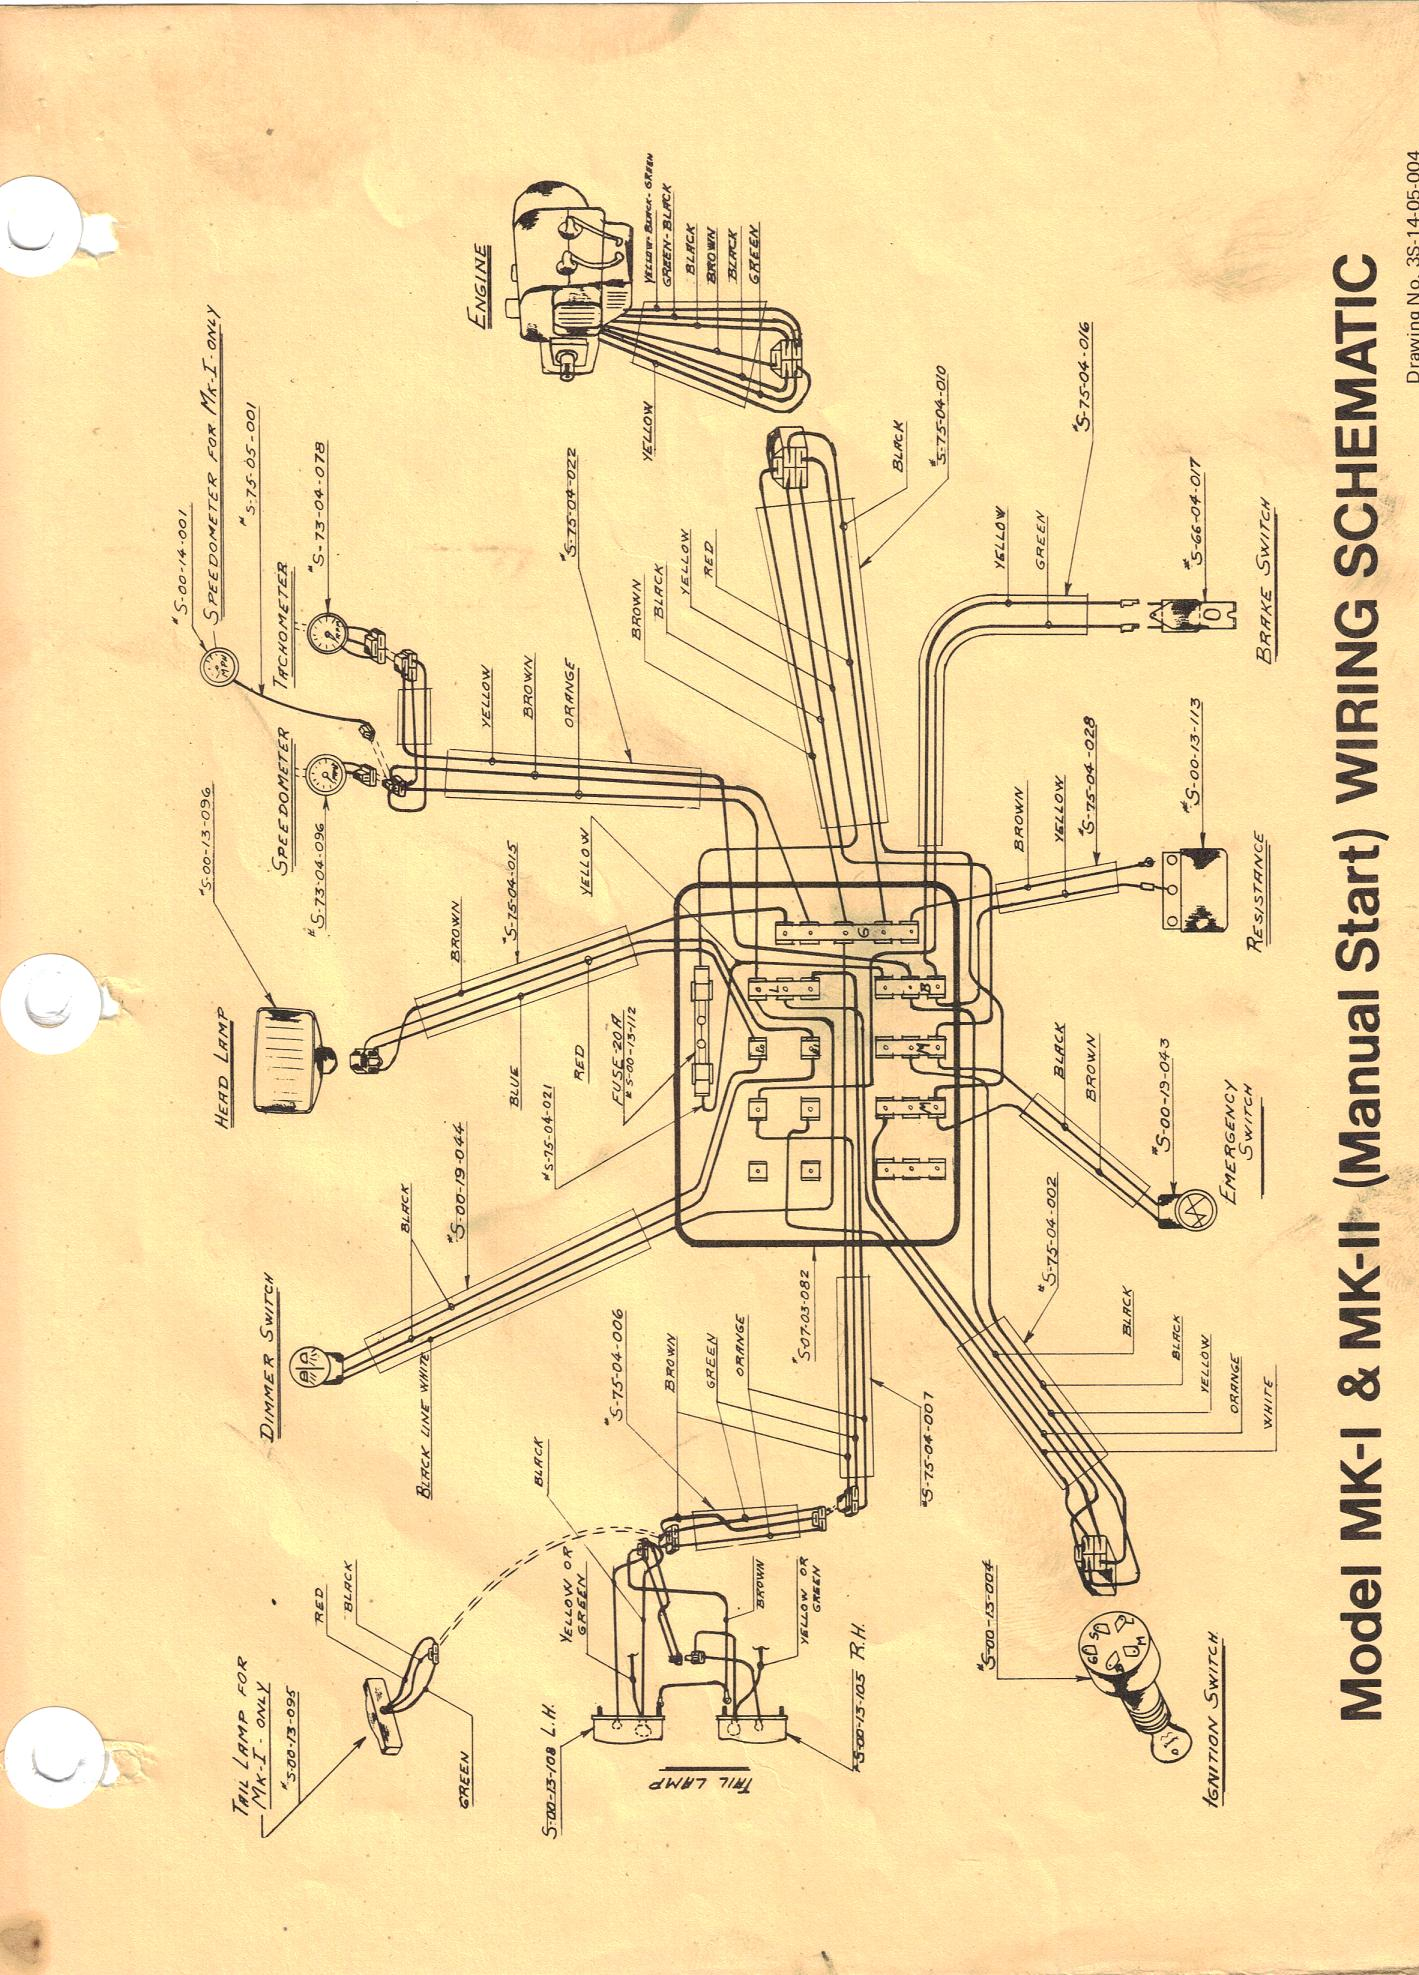 sno way plow wiring diagram trailer hitch get free image about